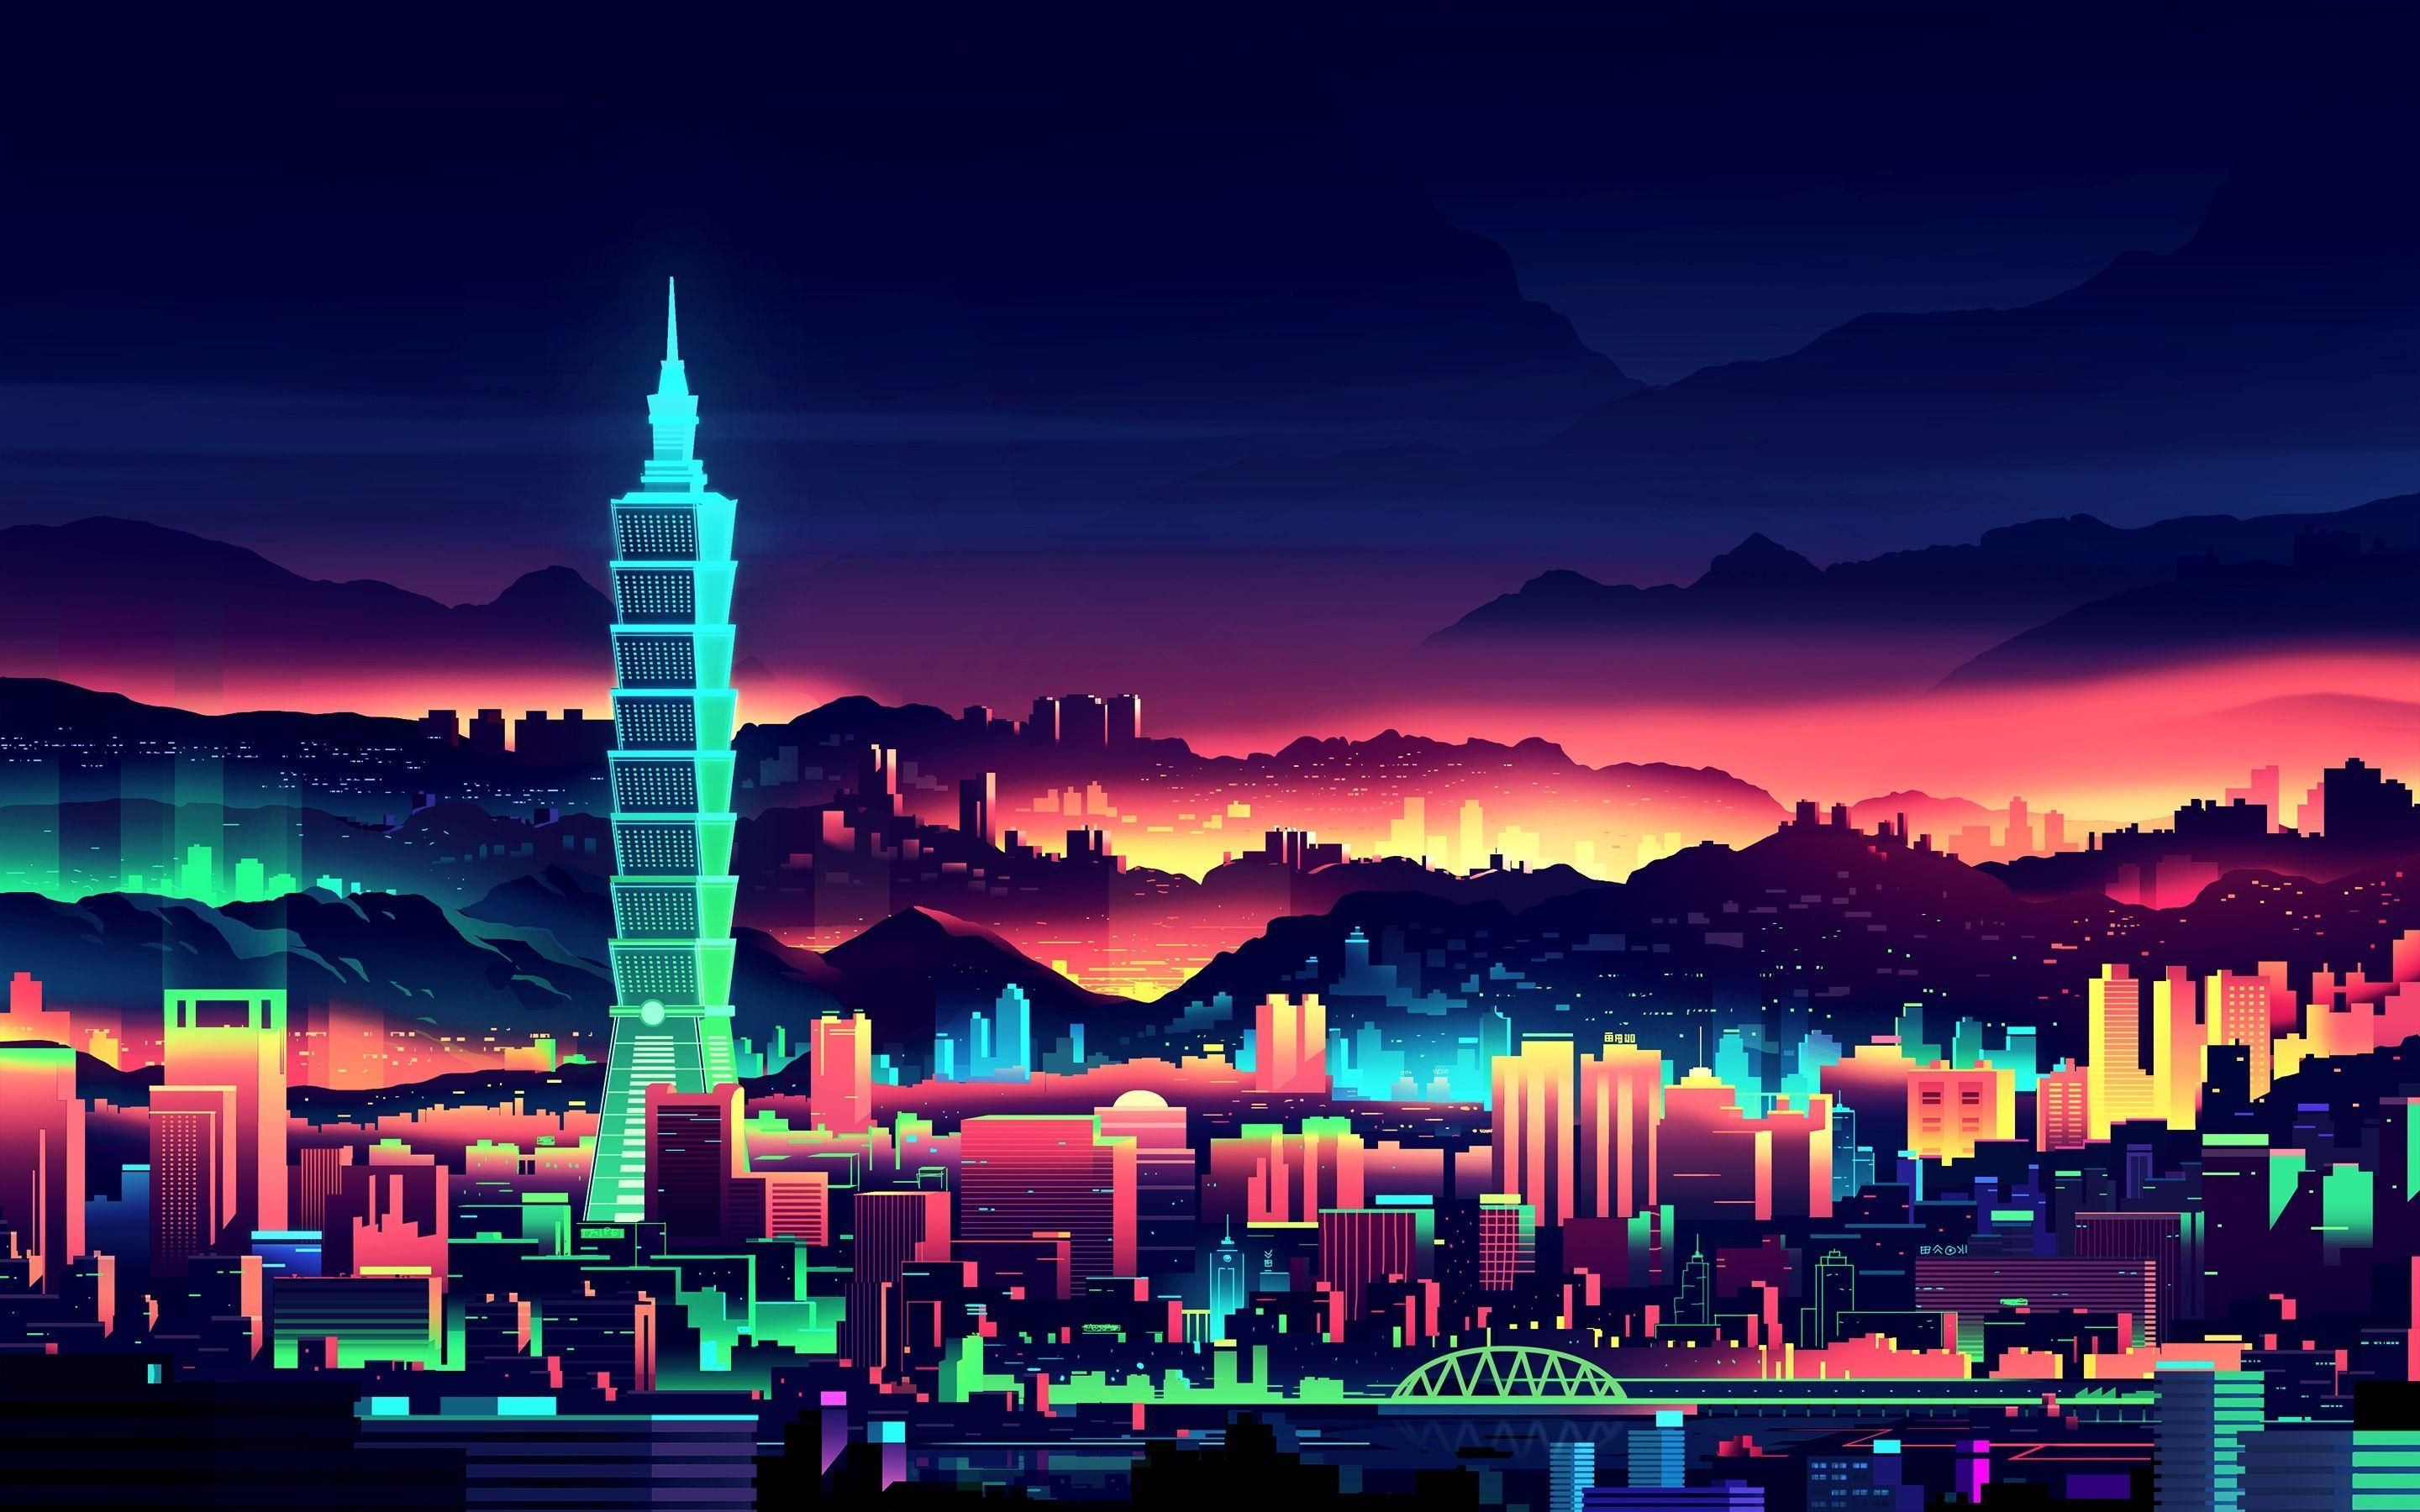 City In Retro Style Of 80s Hd Wallpaper